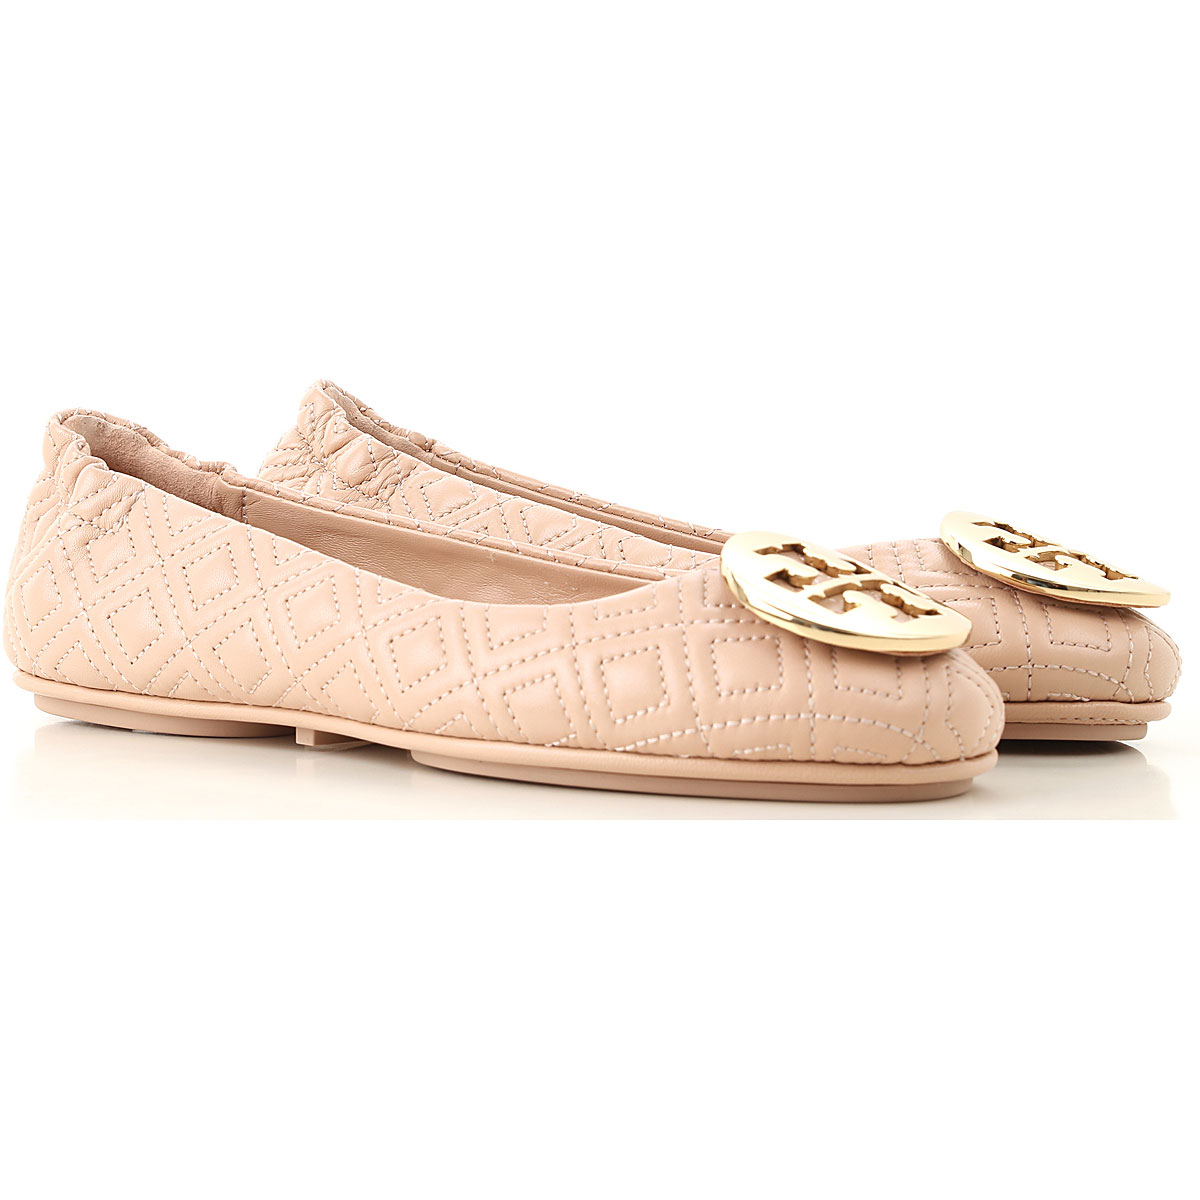 Tory Burch Ballet Flats Ballerina Shoes for Women On Sale, Goan Sand, Leather, 2019, 10 6